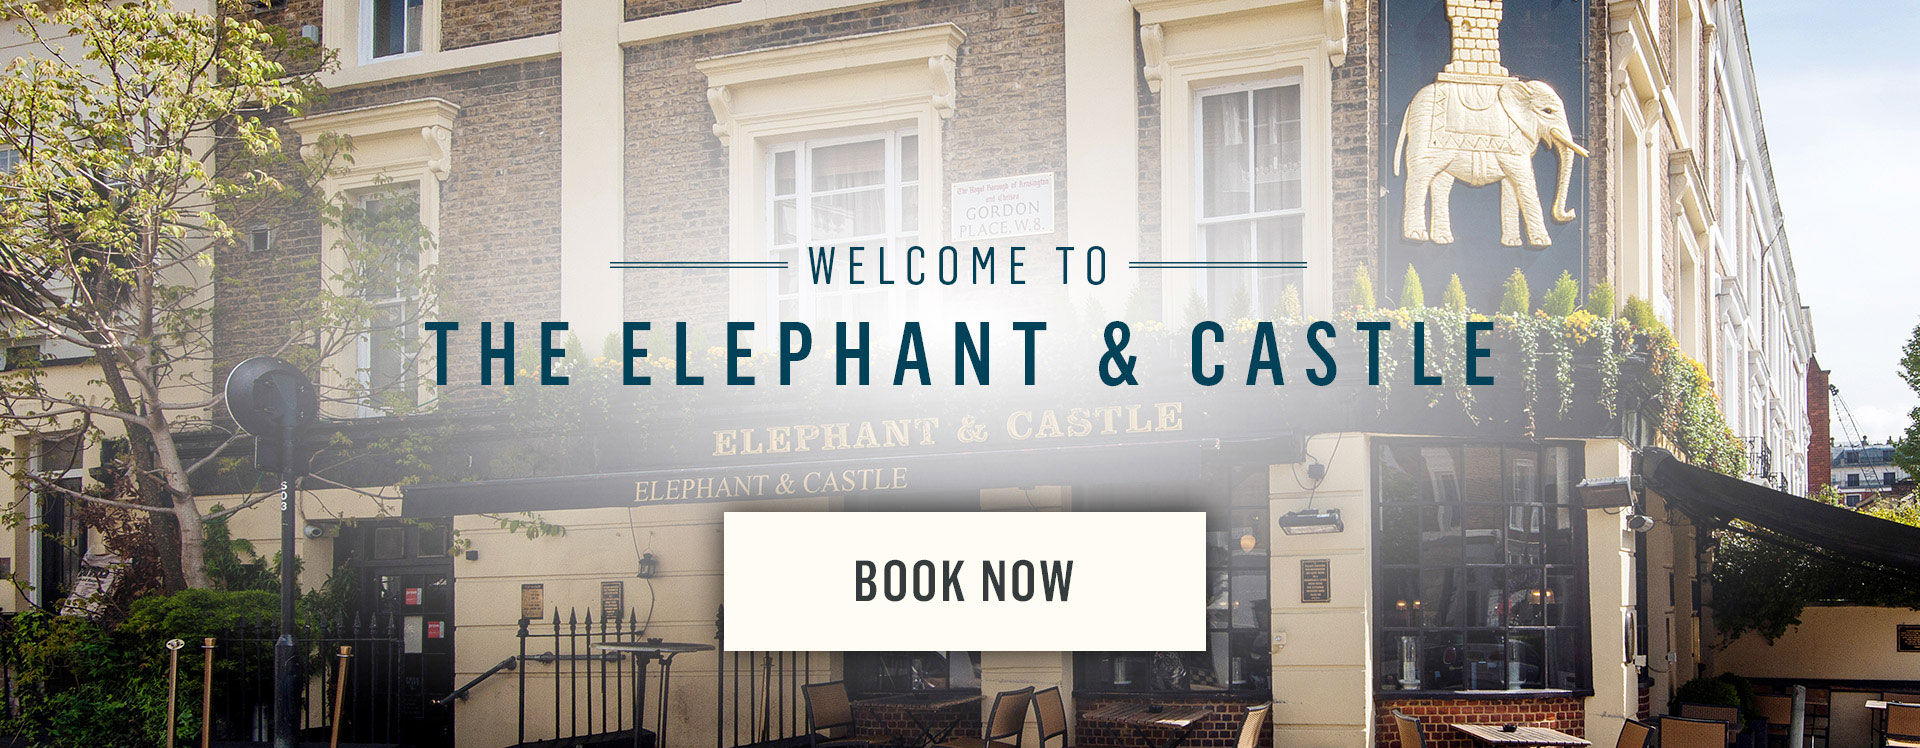 Welcome to The Elephant and Castle - Book Now